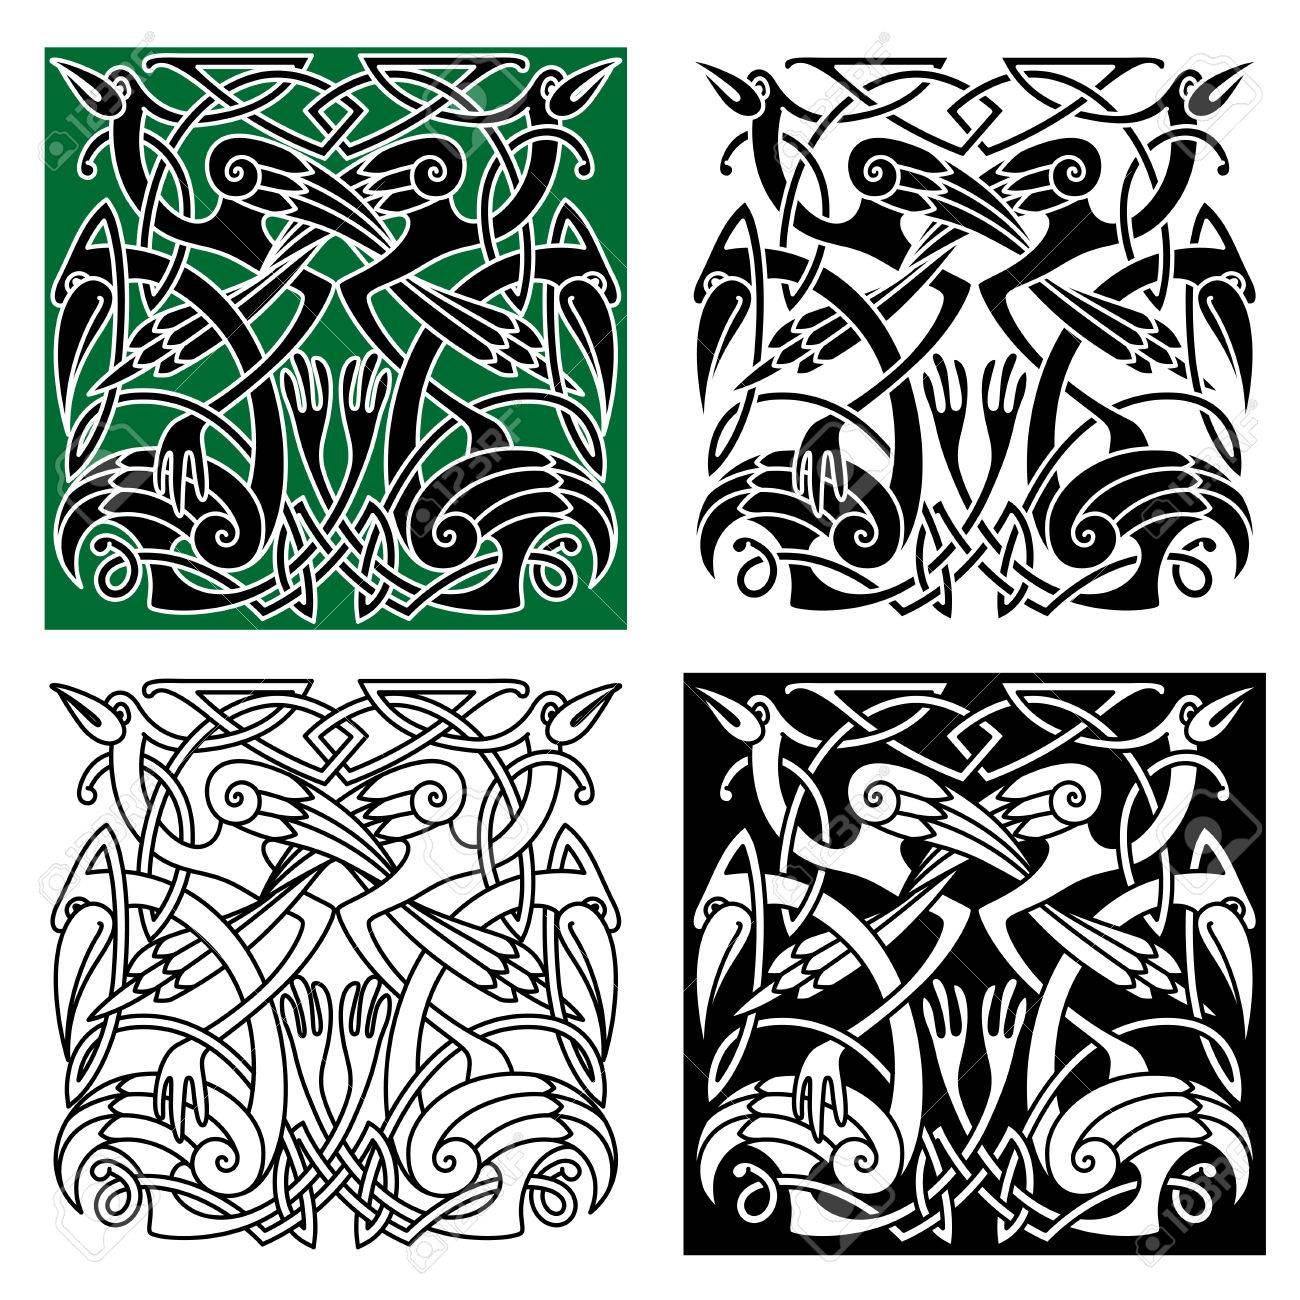 Ancient celtic birds symbols with tribal stylized herons or storks decorated by traditional irish ornament